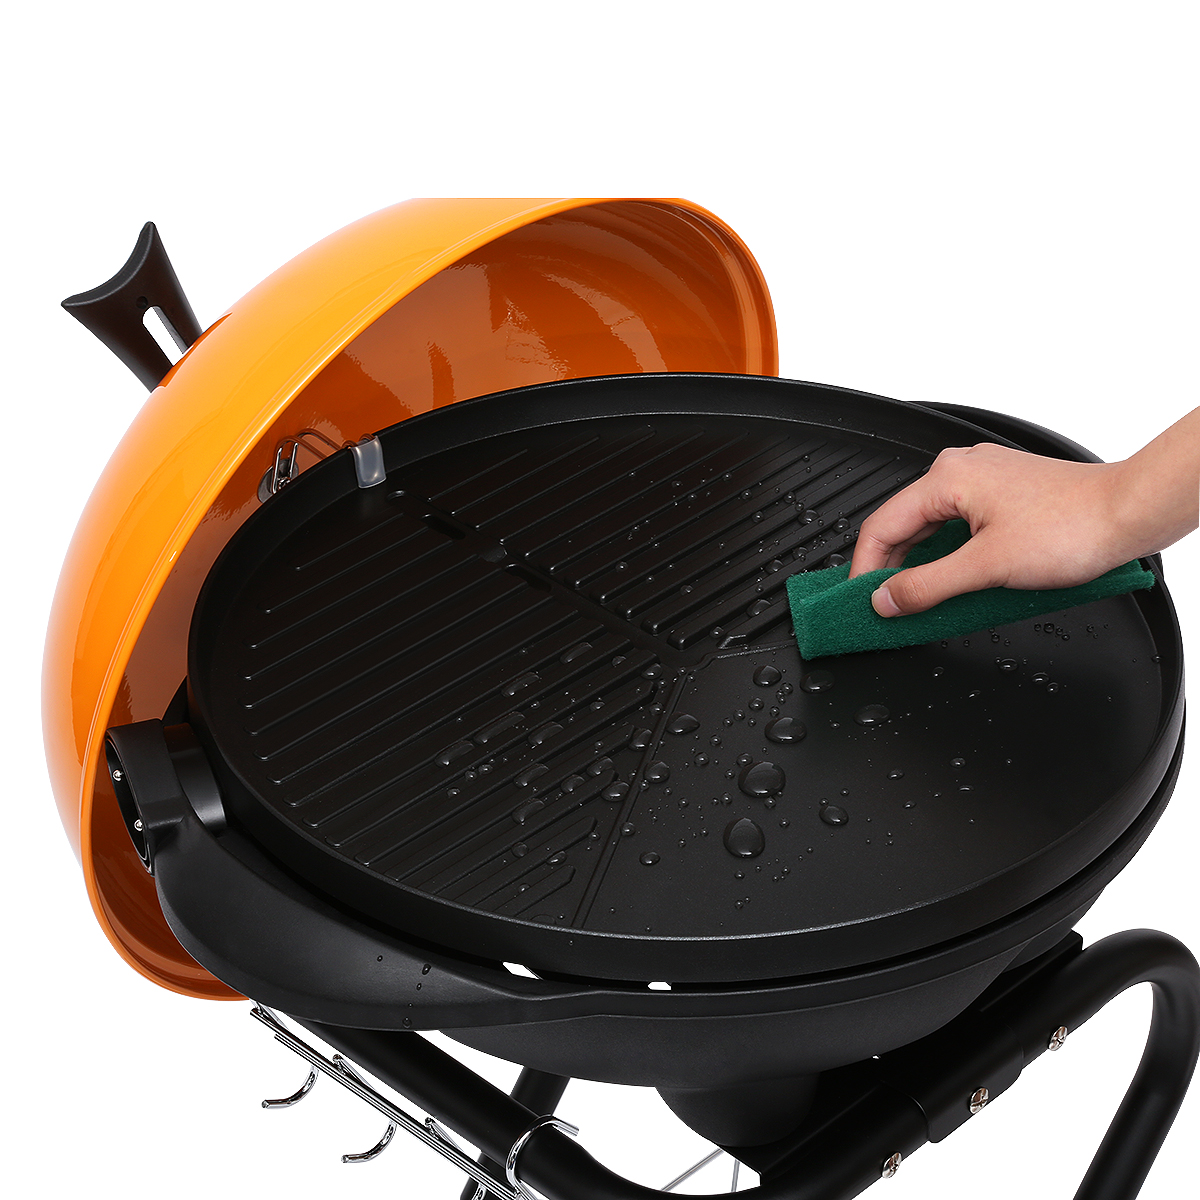 Excelvan Portable 1350W Electric BBQ Grill Easy To Clean, Black    Walmart.com